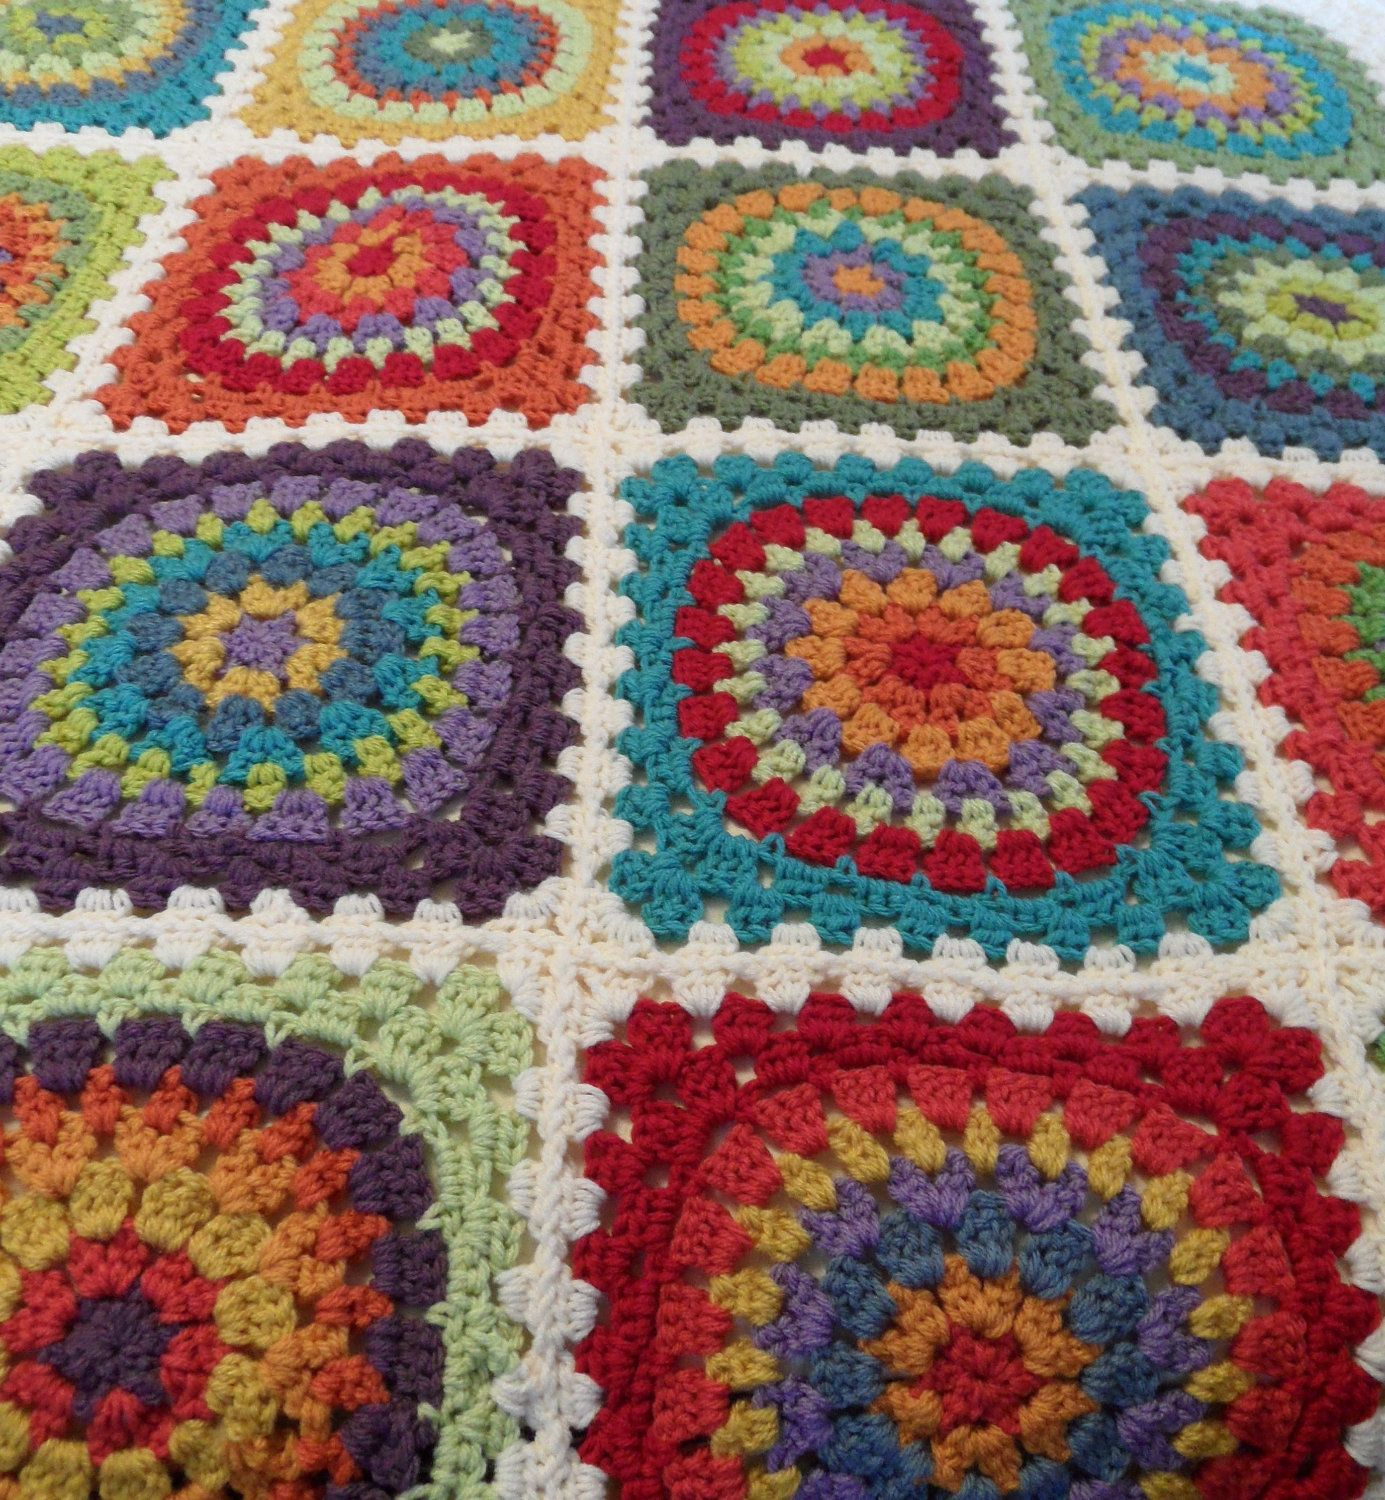 Colorful Handcrocheted Granny Square Blanket | Living room ...